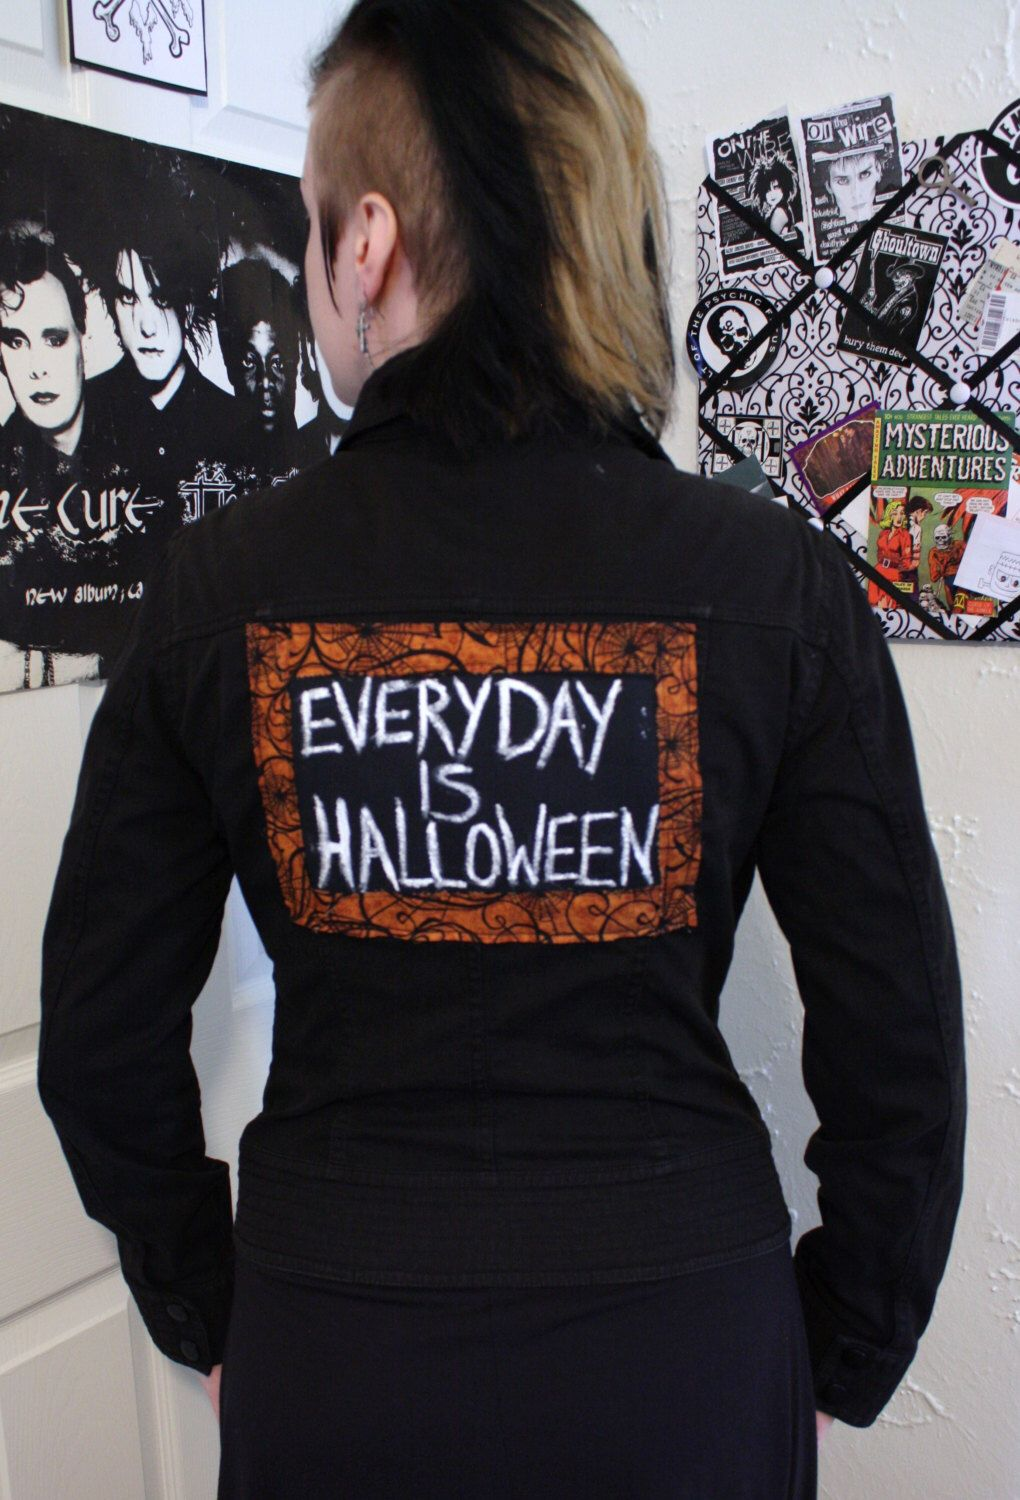 Everyday is Halloween back patch Upcycled DIY Jacket deathrock ...